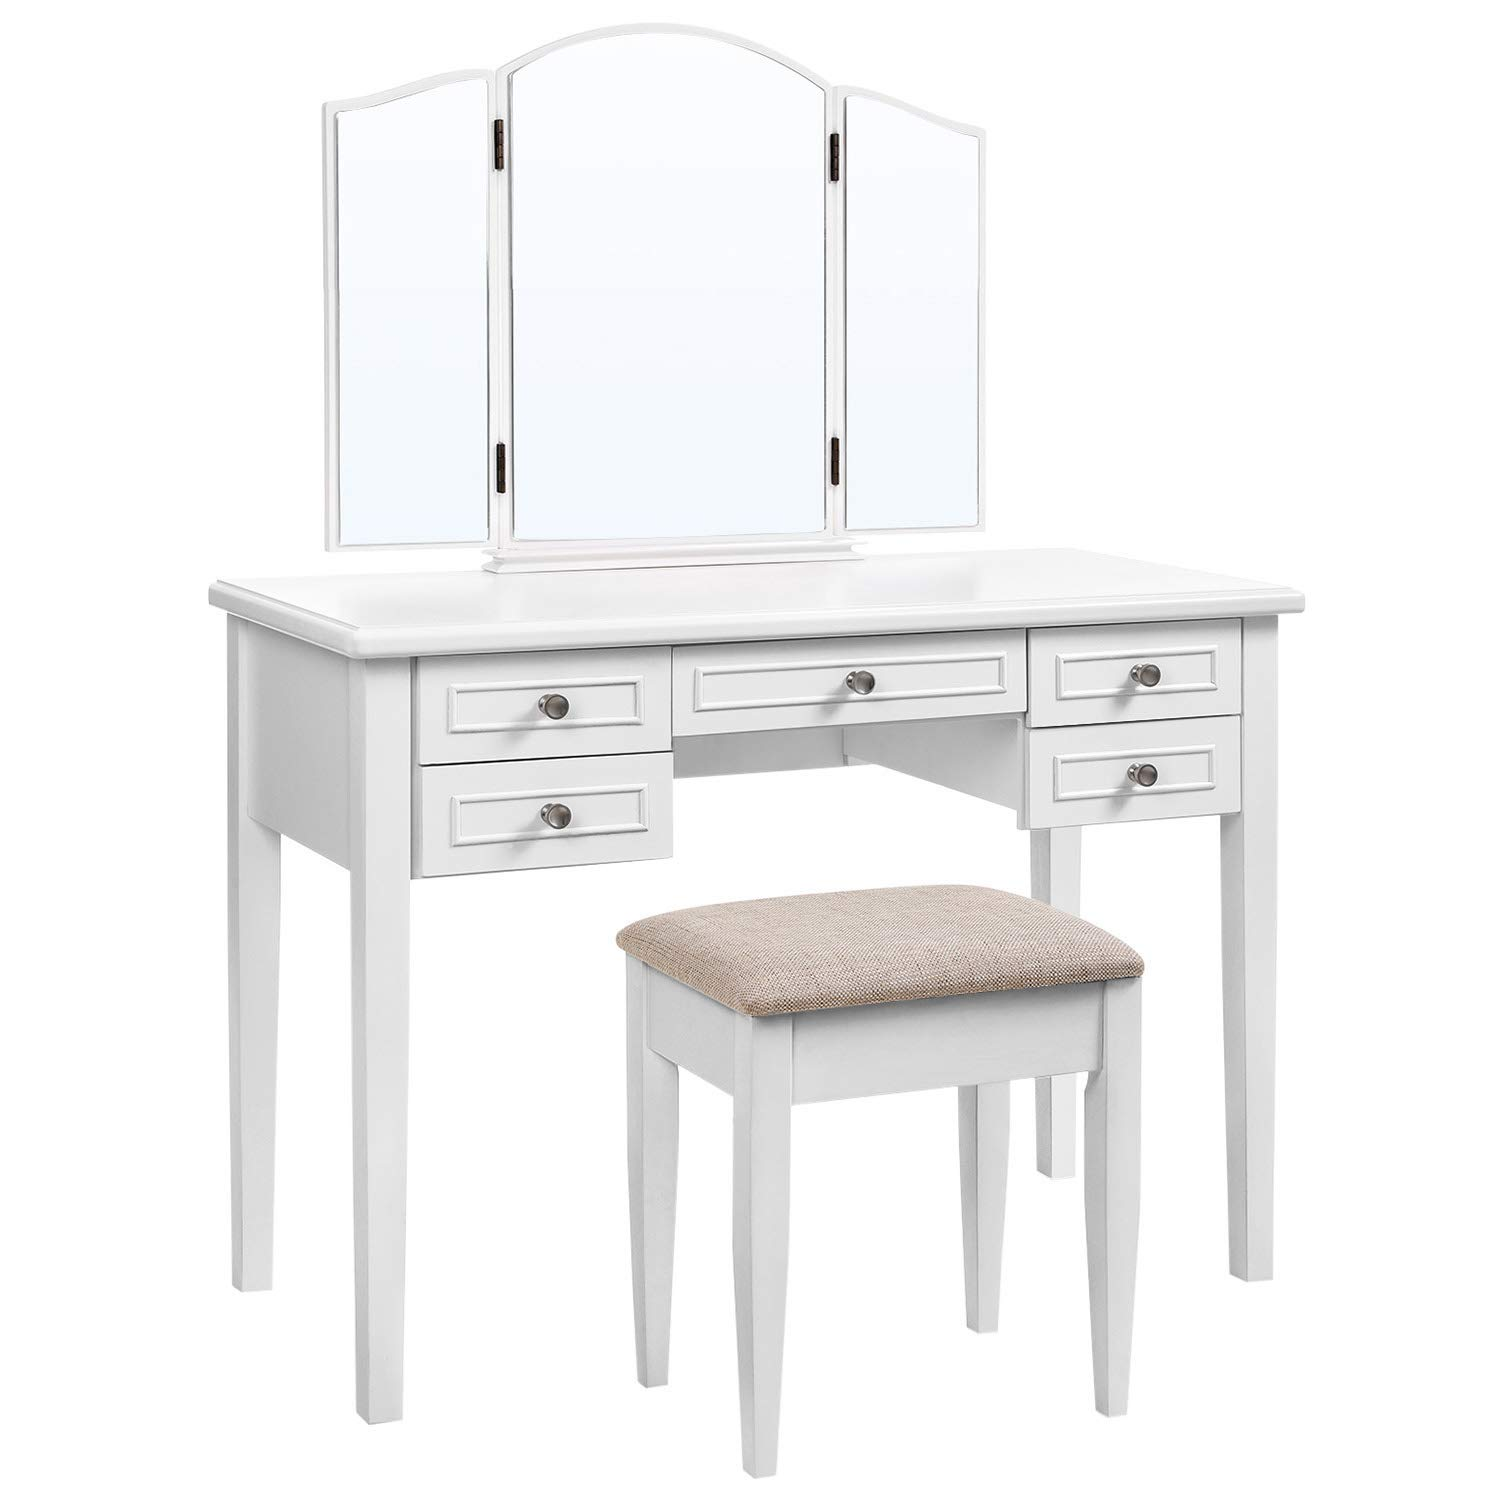 VASAGLE Vanity Set with Tri-Fold Mirror, Dressing Table with 5 Drawers, Desk with 1 Stool, Makeup and Cosmetics Storage, Multifunctional, Easy to Assemble, White URDT107WT by VASAGLE